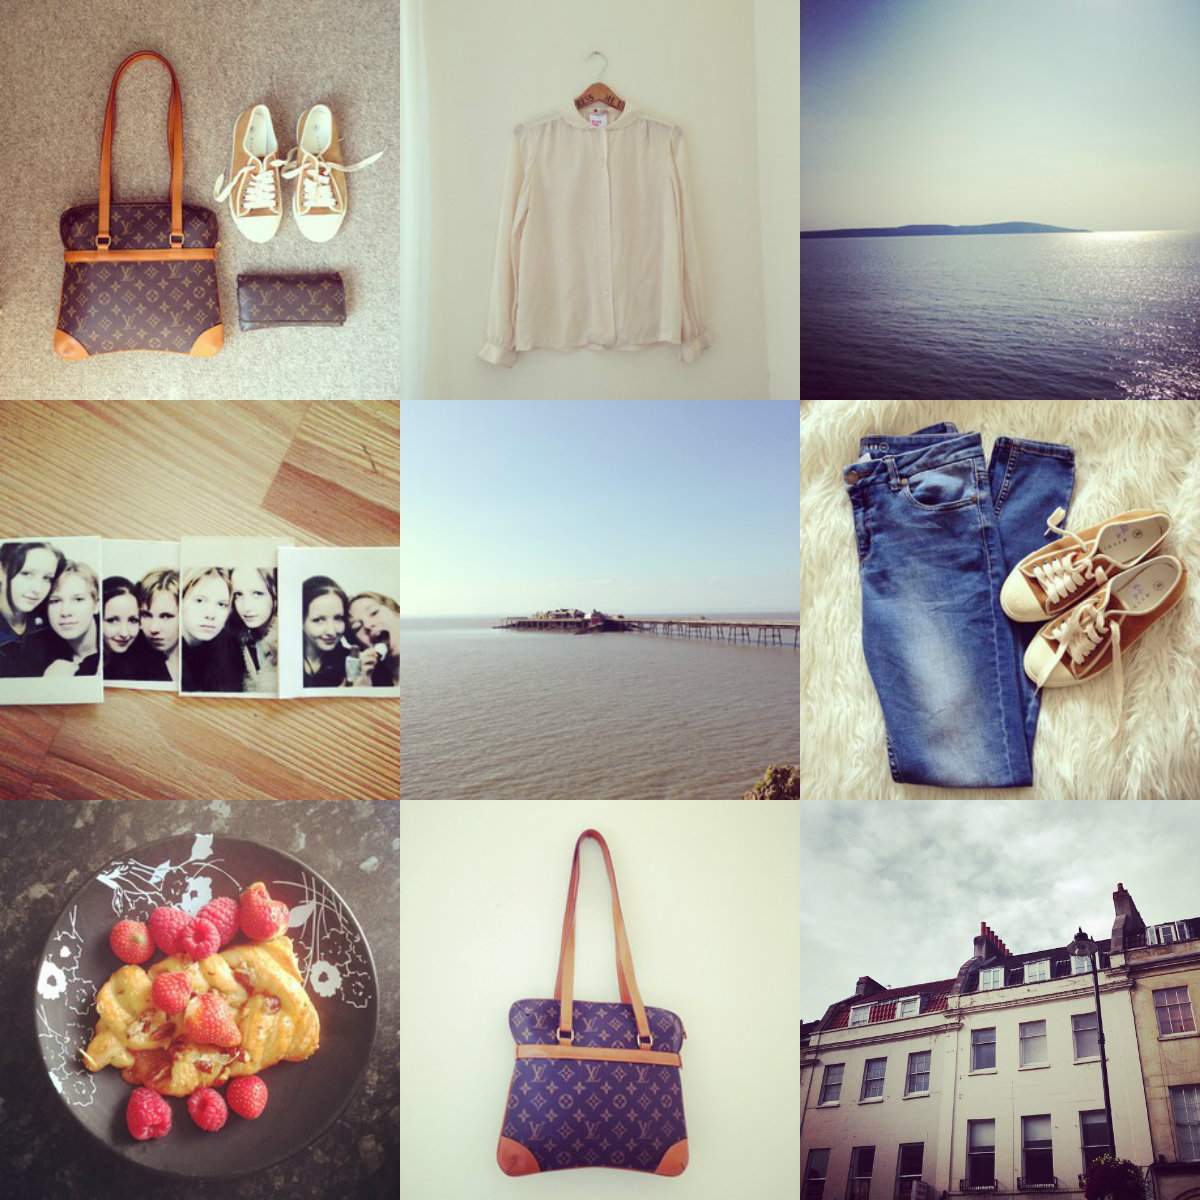 instagram, louis vuitton, whistles, beach, sky, street, vintage